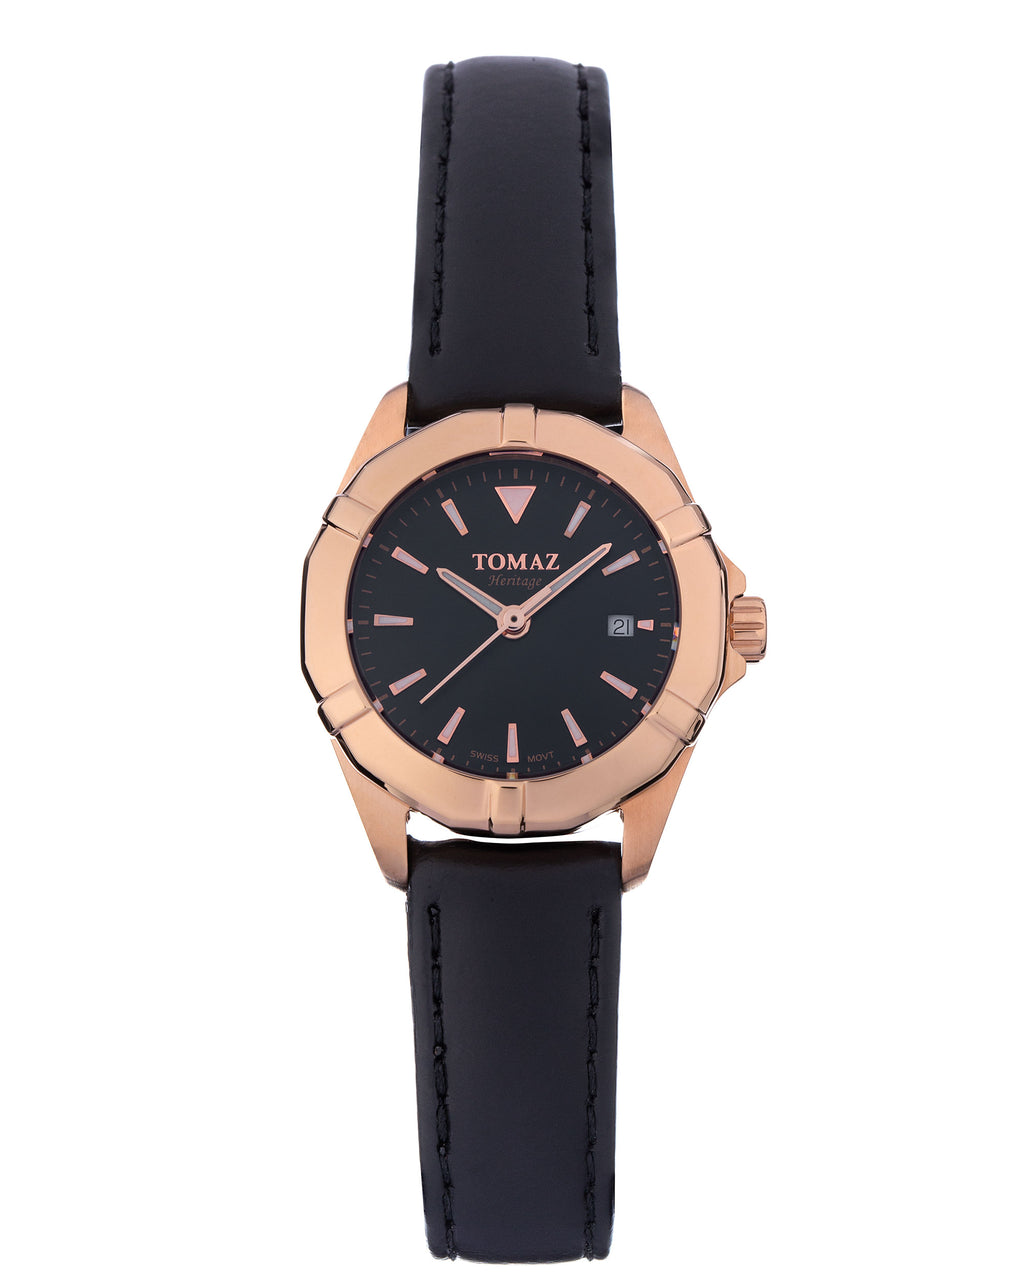 Tomaz Ladies Watch TQ009 (Rose Gold/Black)